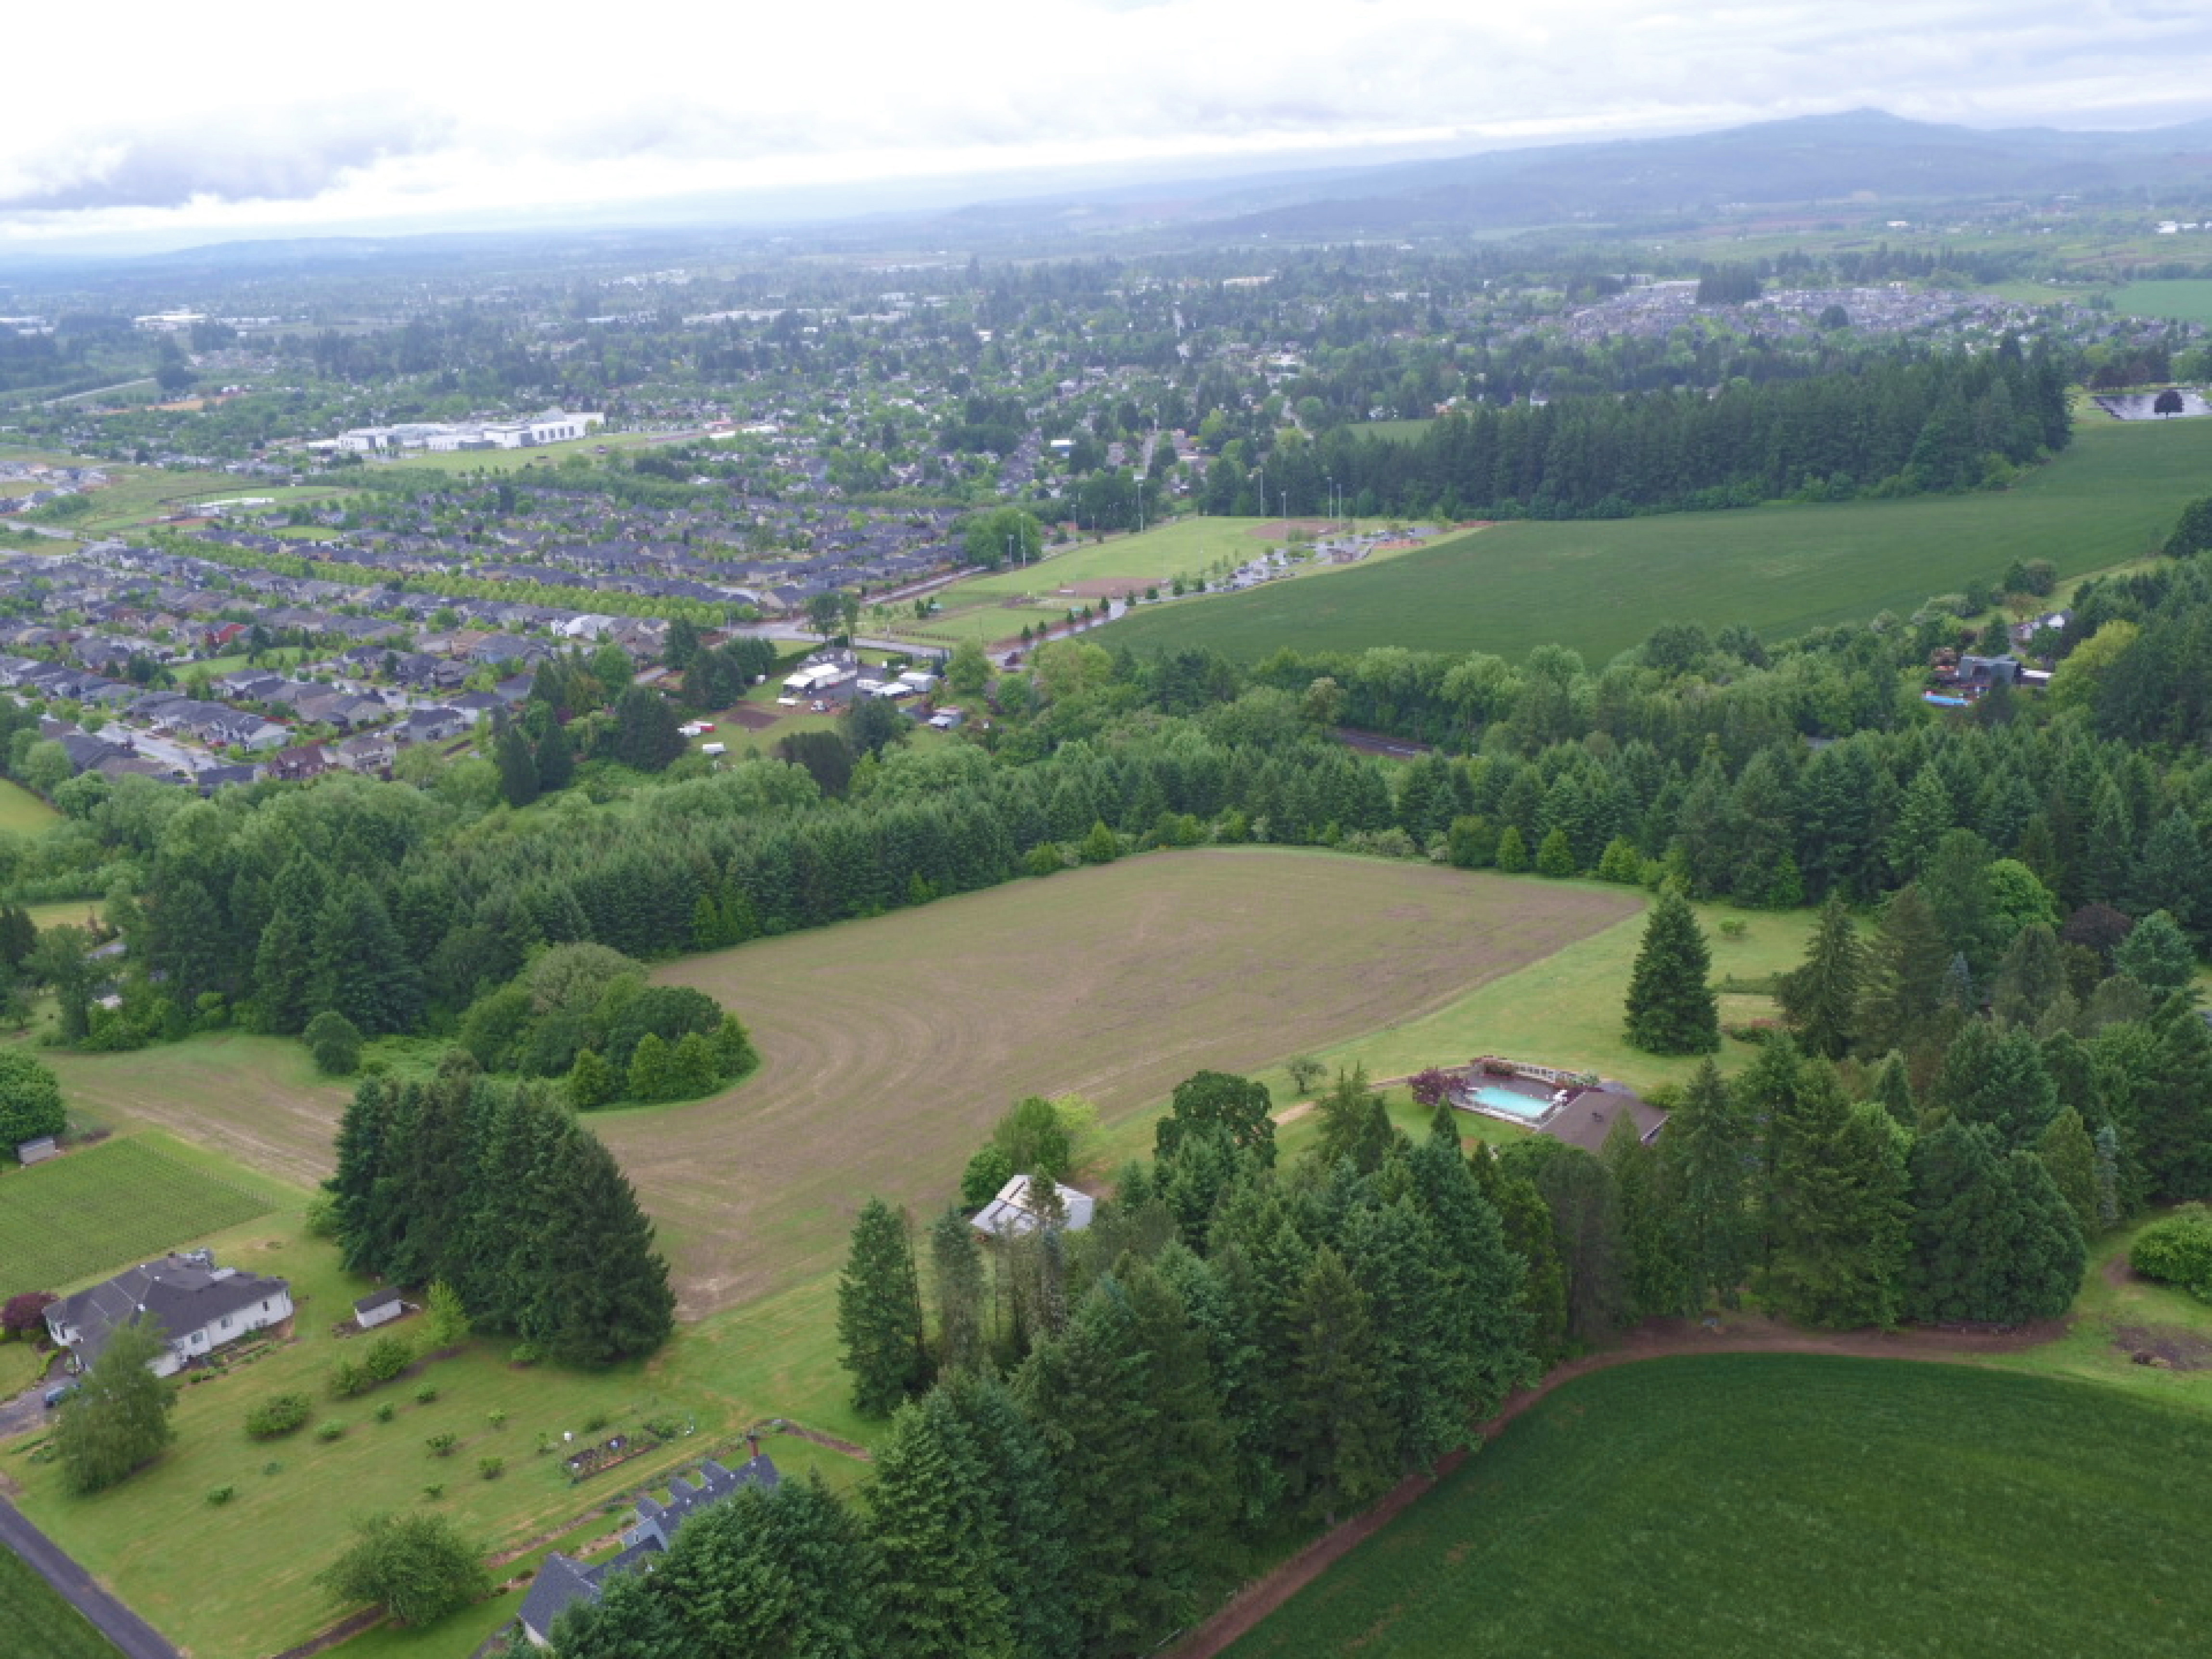 An aerial photo taken above Forest Grove shows hedgerows bordering the urban growth boundary and used as buffers between fields.